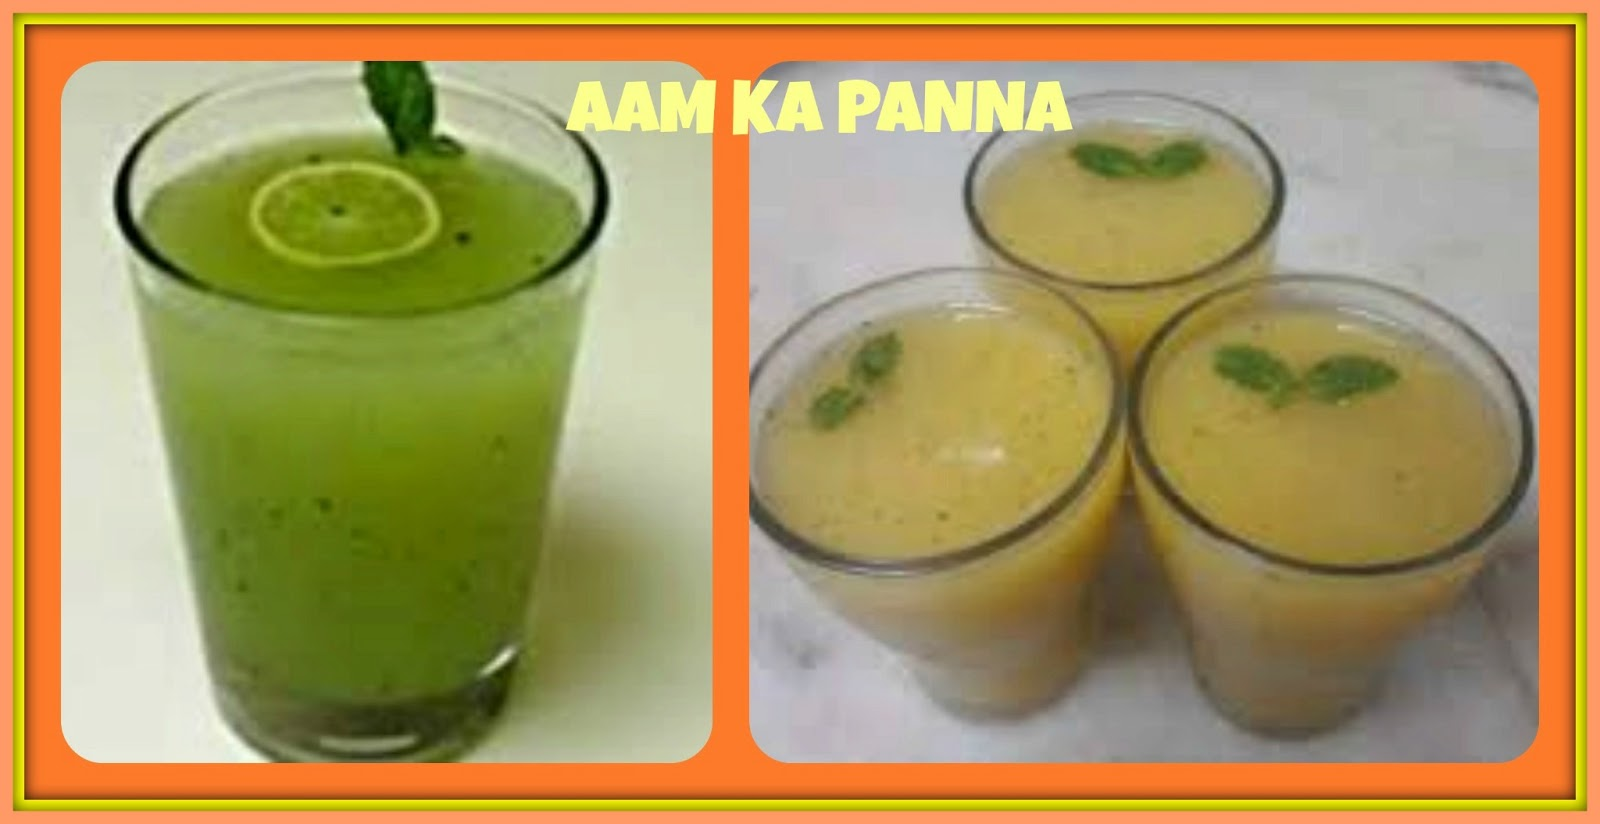 ... Aam Panna made from Green Mangoes ... CATCH THE RECIPE OF AAM KA PANNA